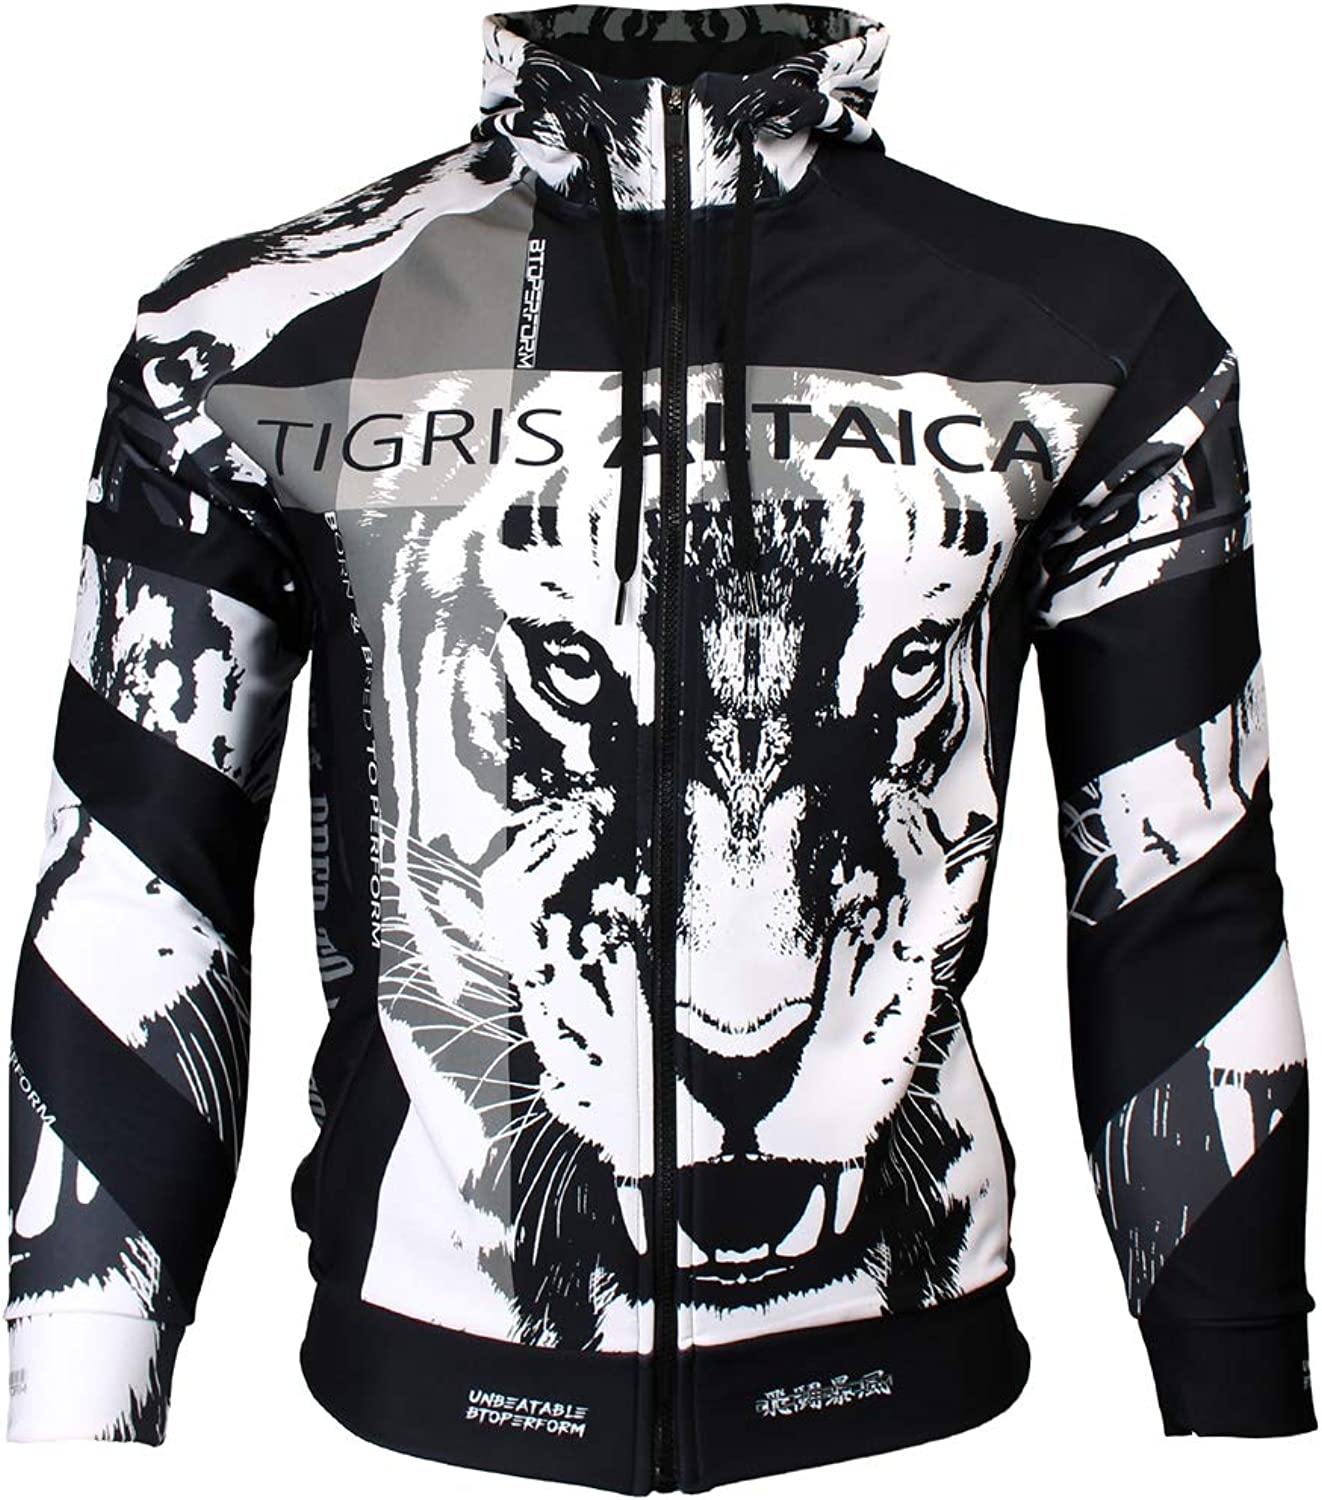 Btoperform Tigris Altaica Full Graphic Hoodies HD-24